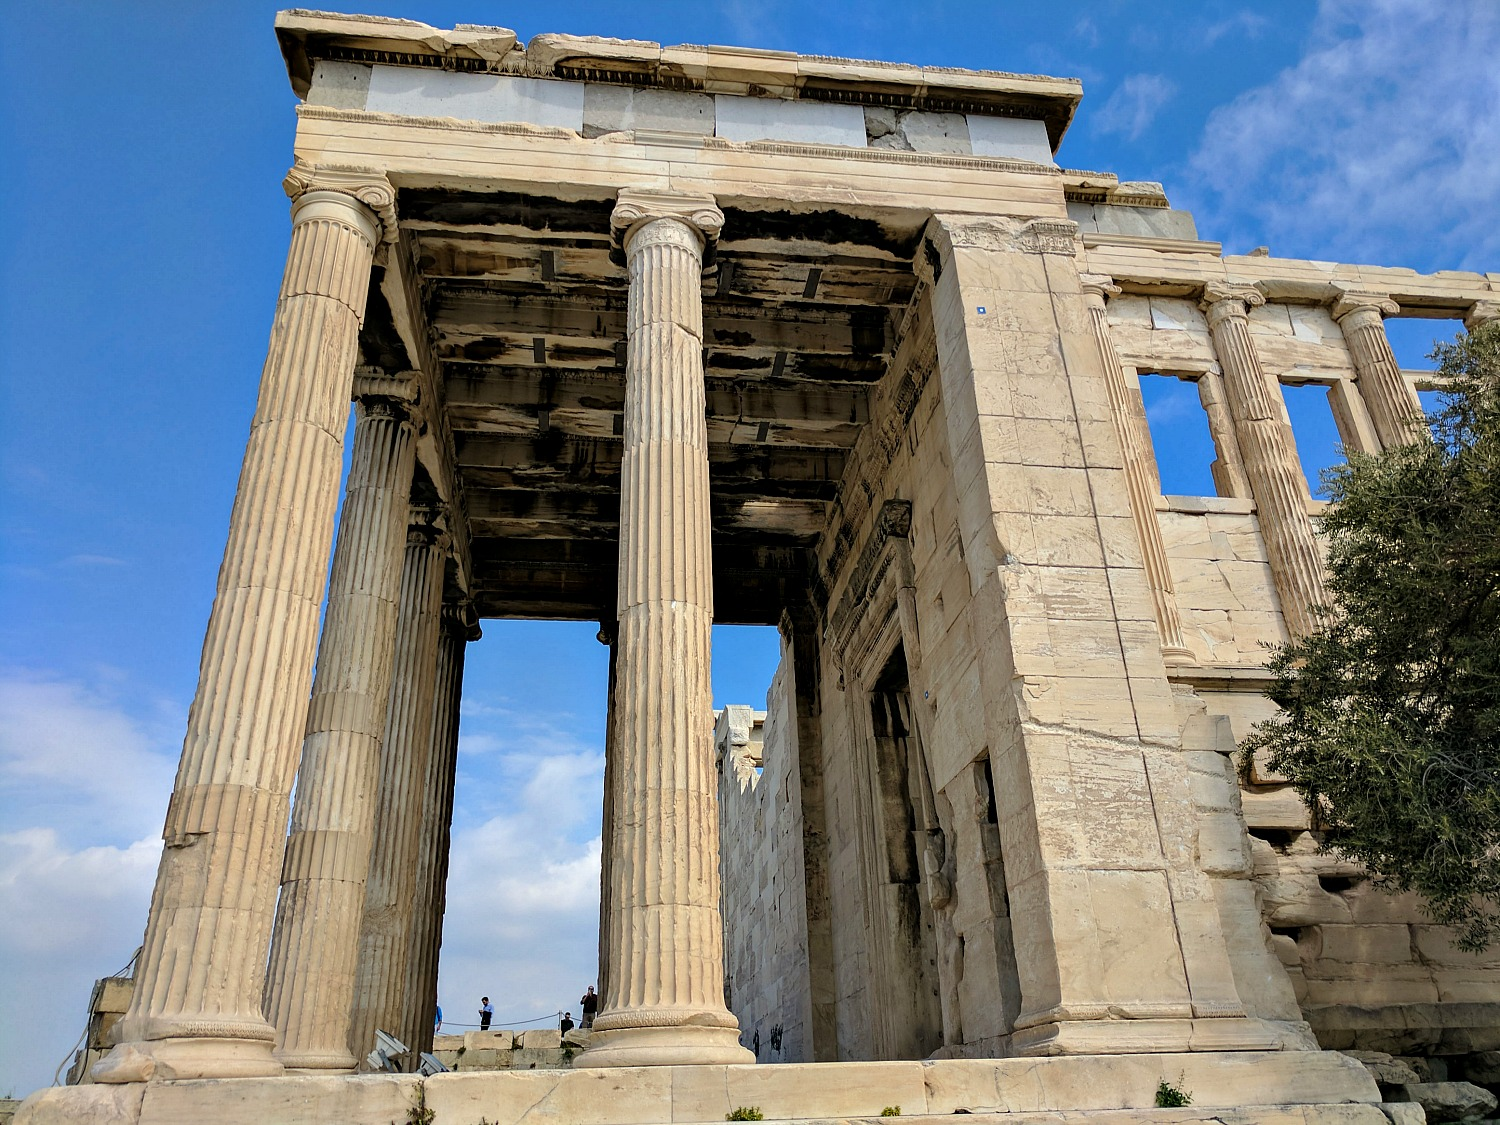 Itinerary for Athens. The Acropolis complex is the number one attraction in Athens.